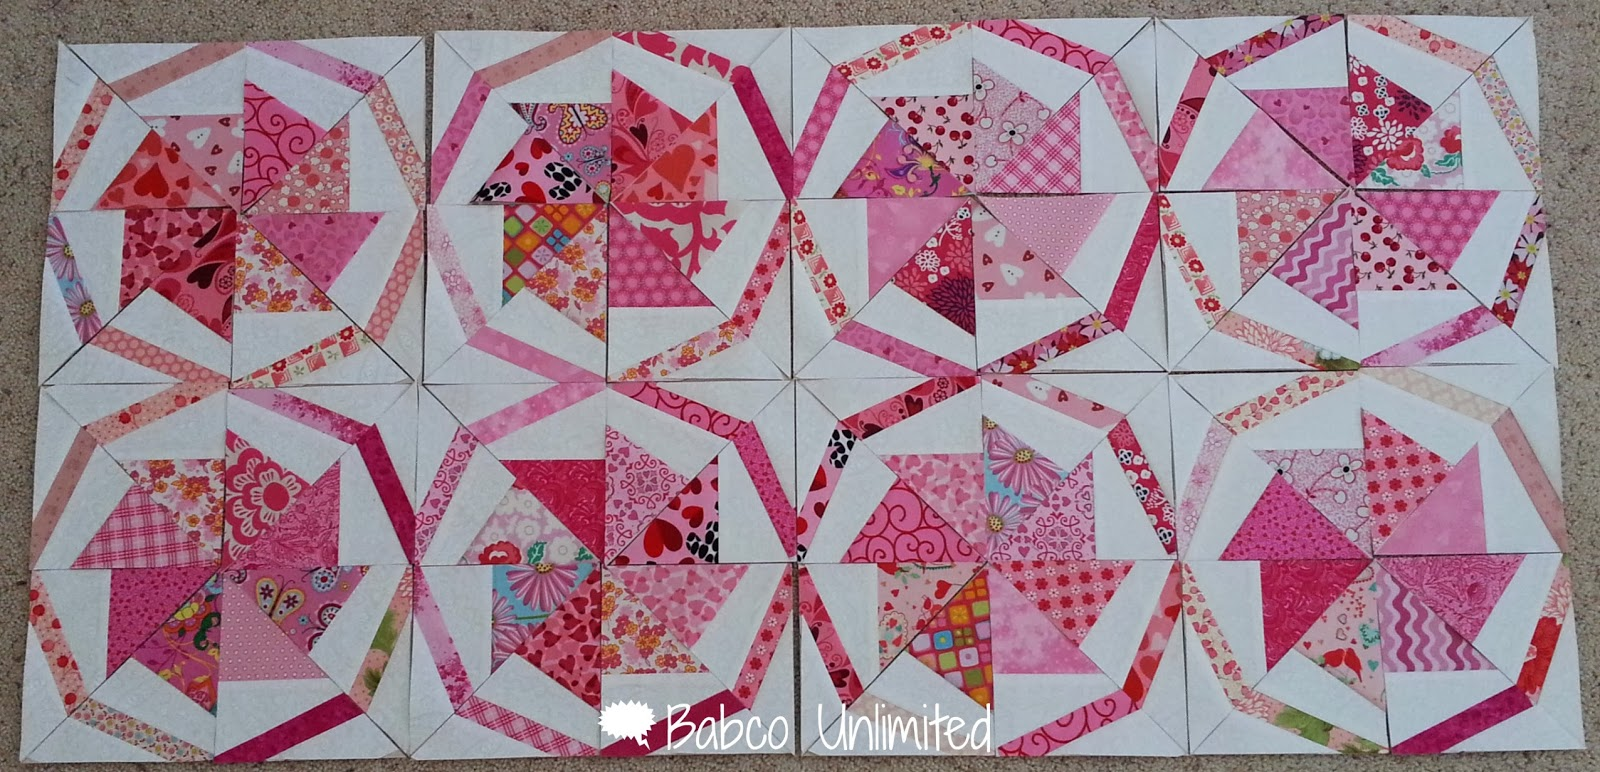 BabcoUnlimited.blogspot.com - Wheel of Fortune Quilt, 2 color Quilt, Pink & White Quilt